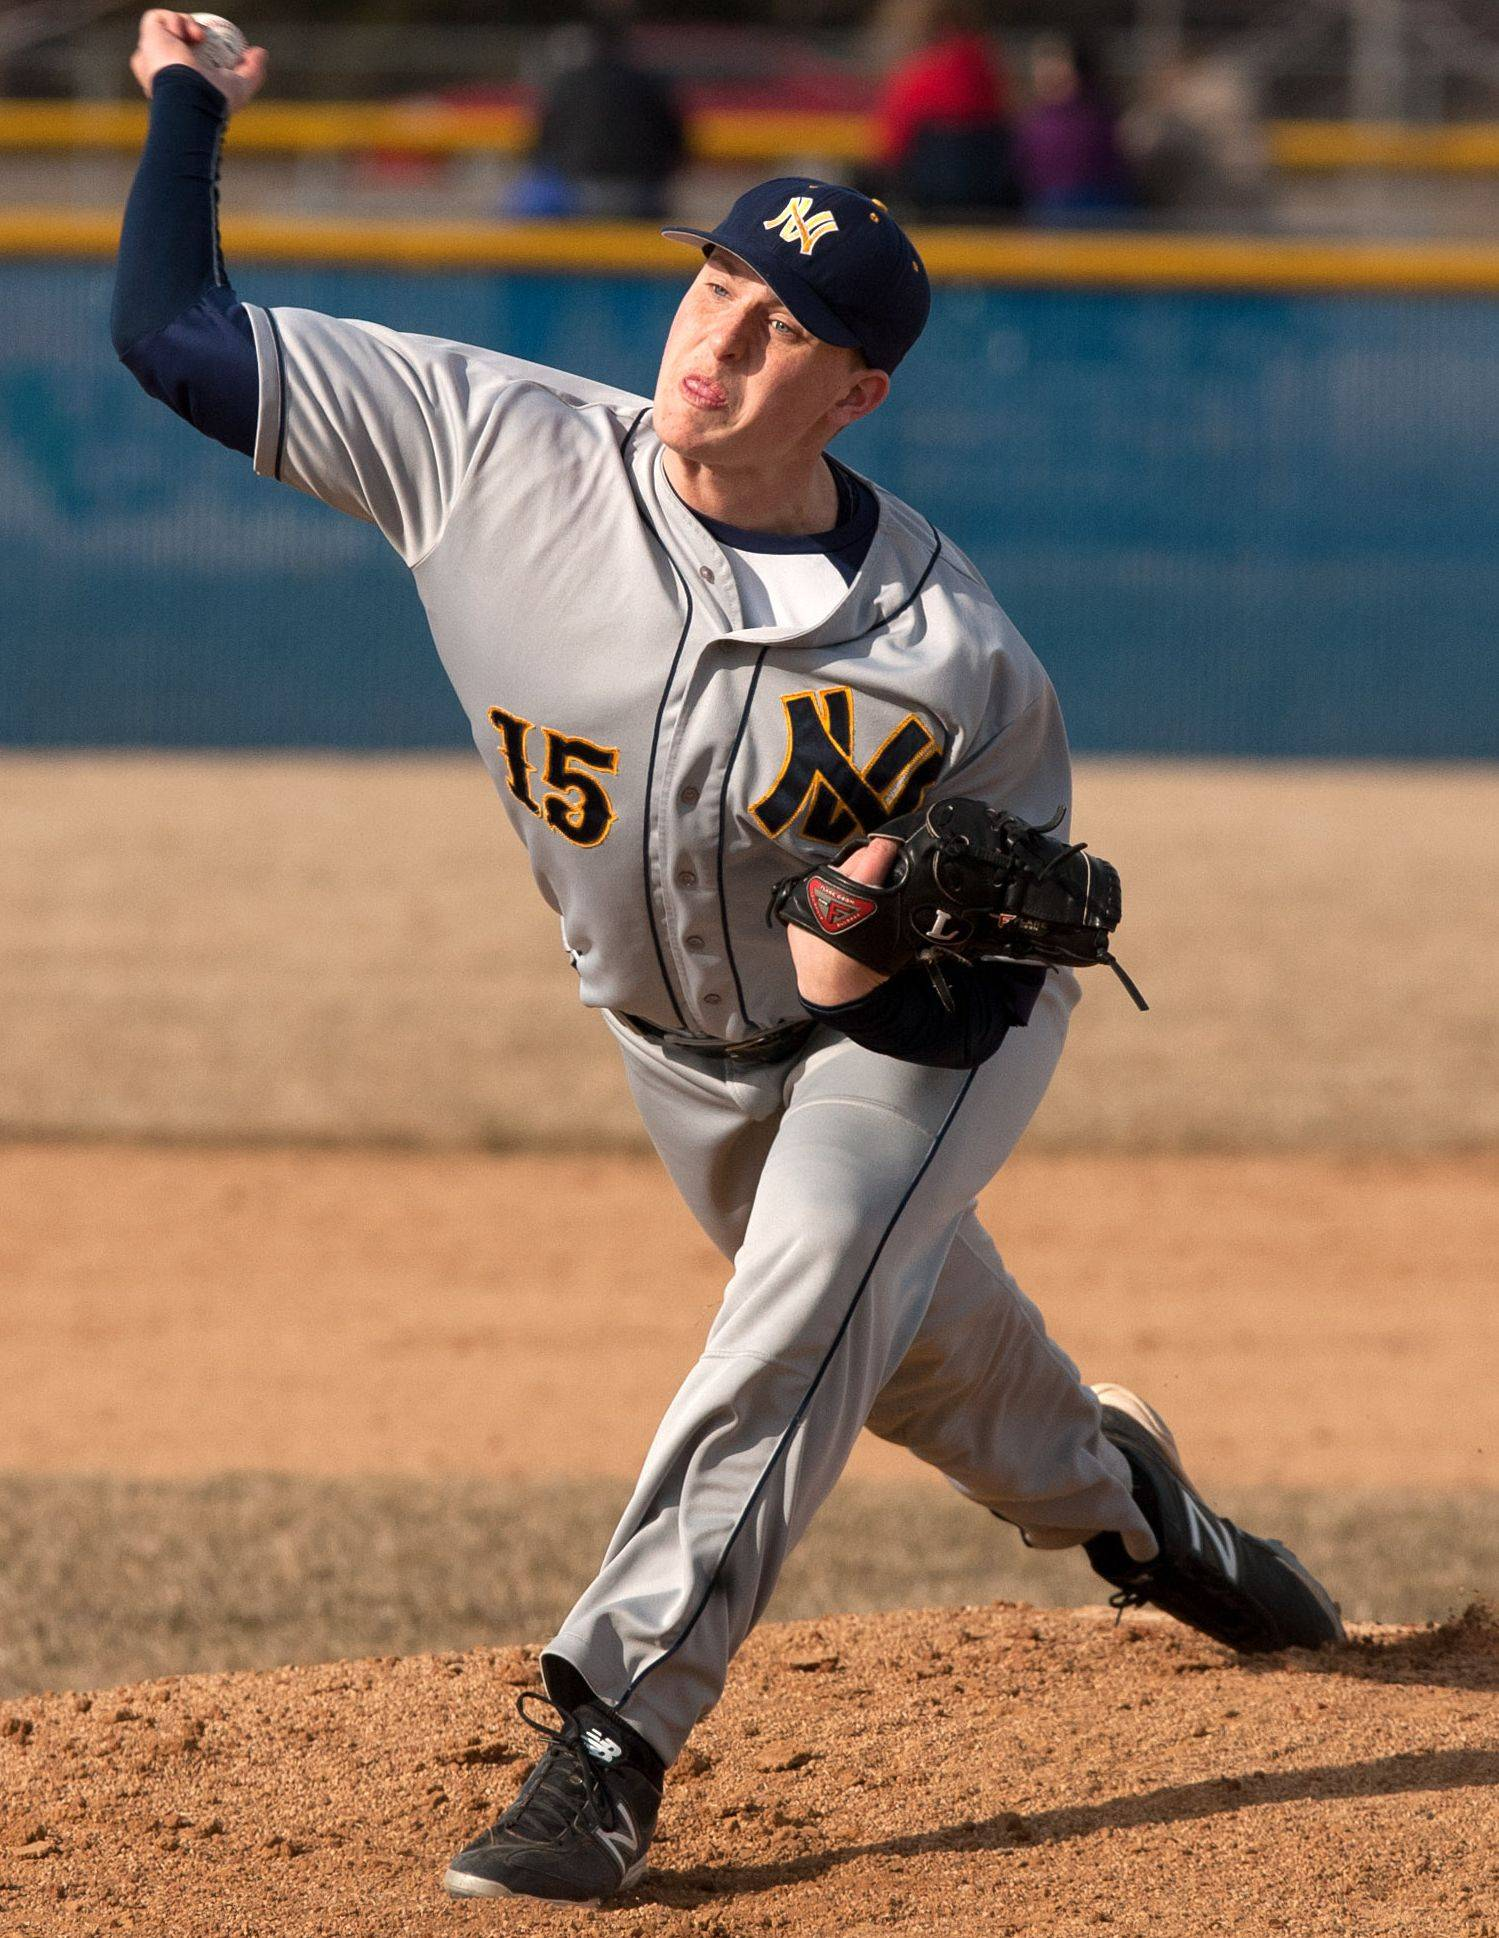 Neuqua Valley pitcher Cody Coll will take the mound at 3 p.m. today in Joliet against Mt. Carmel.